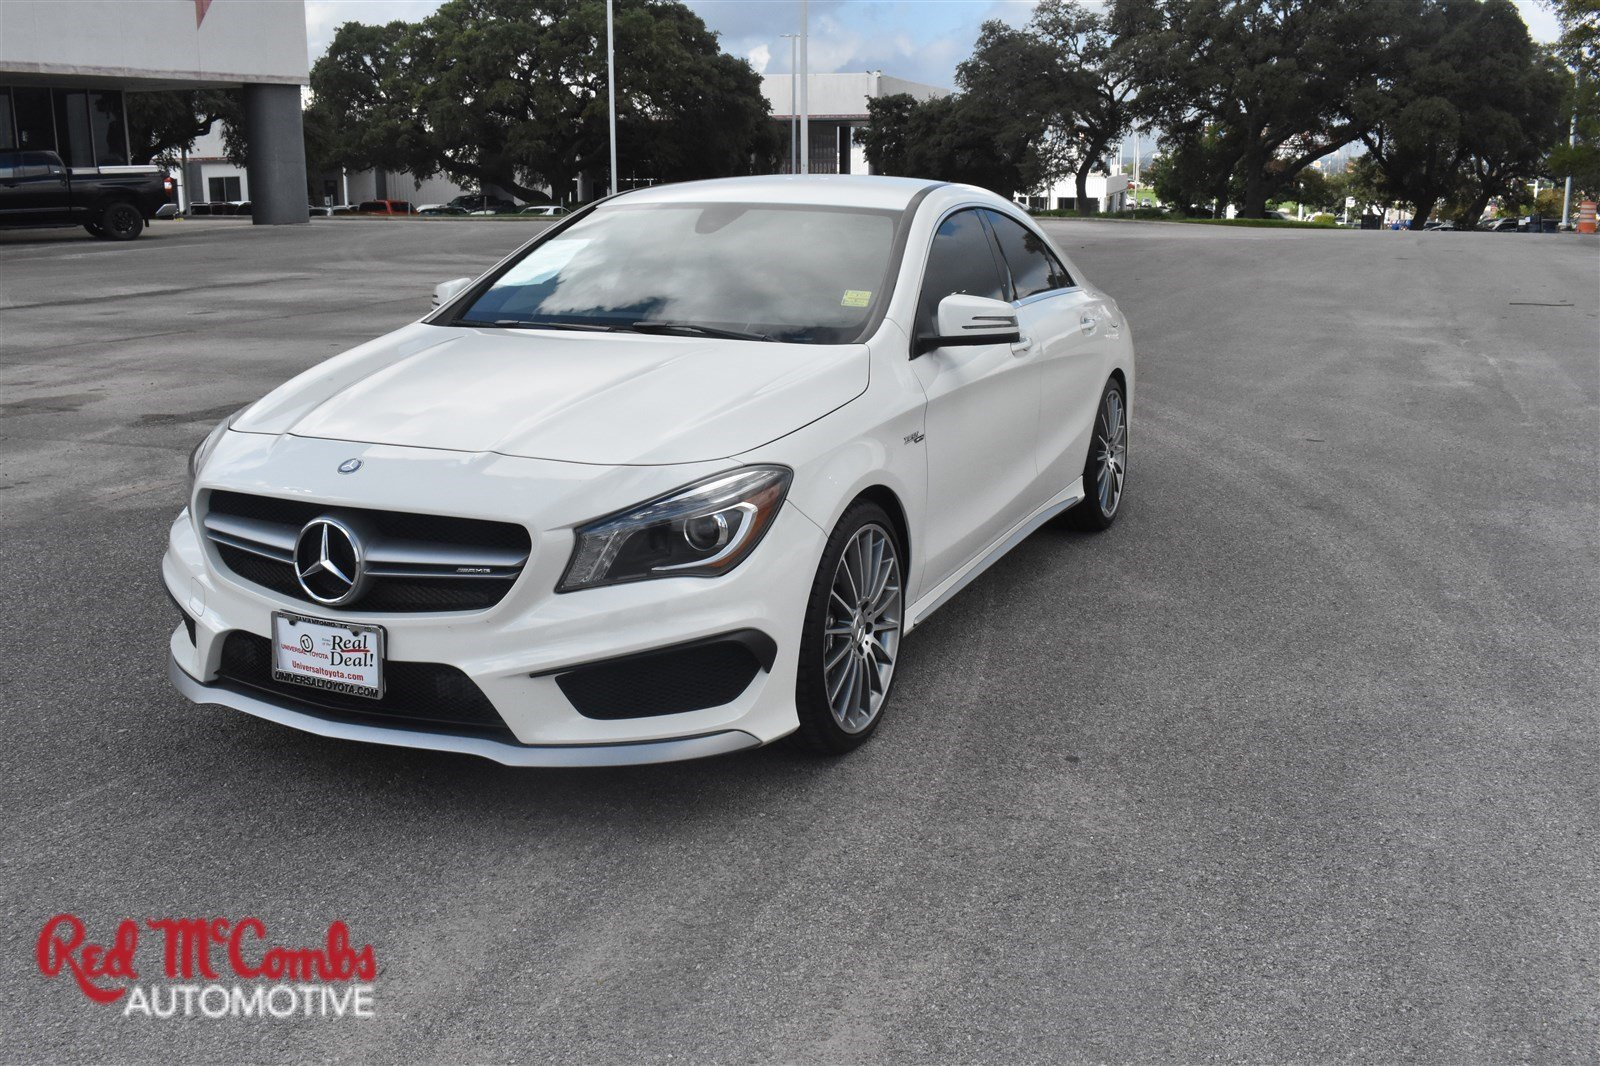 Pre Owned 2015 Mercedes Benz CLA CLA 45 AMG®